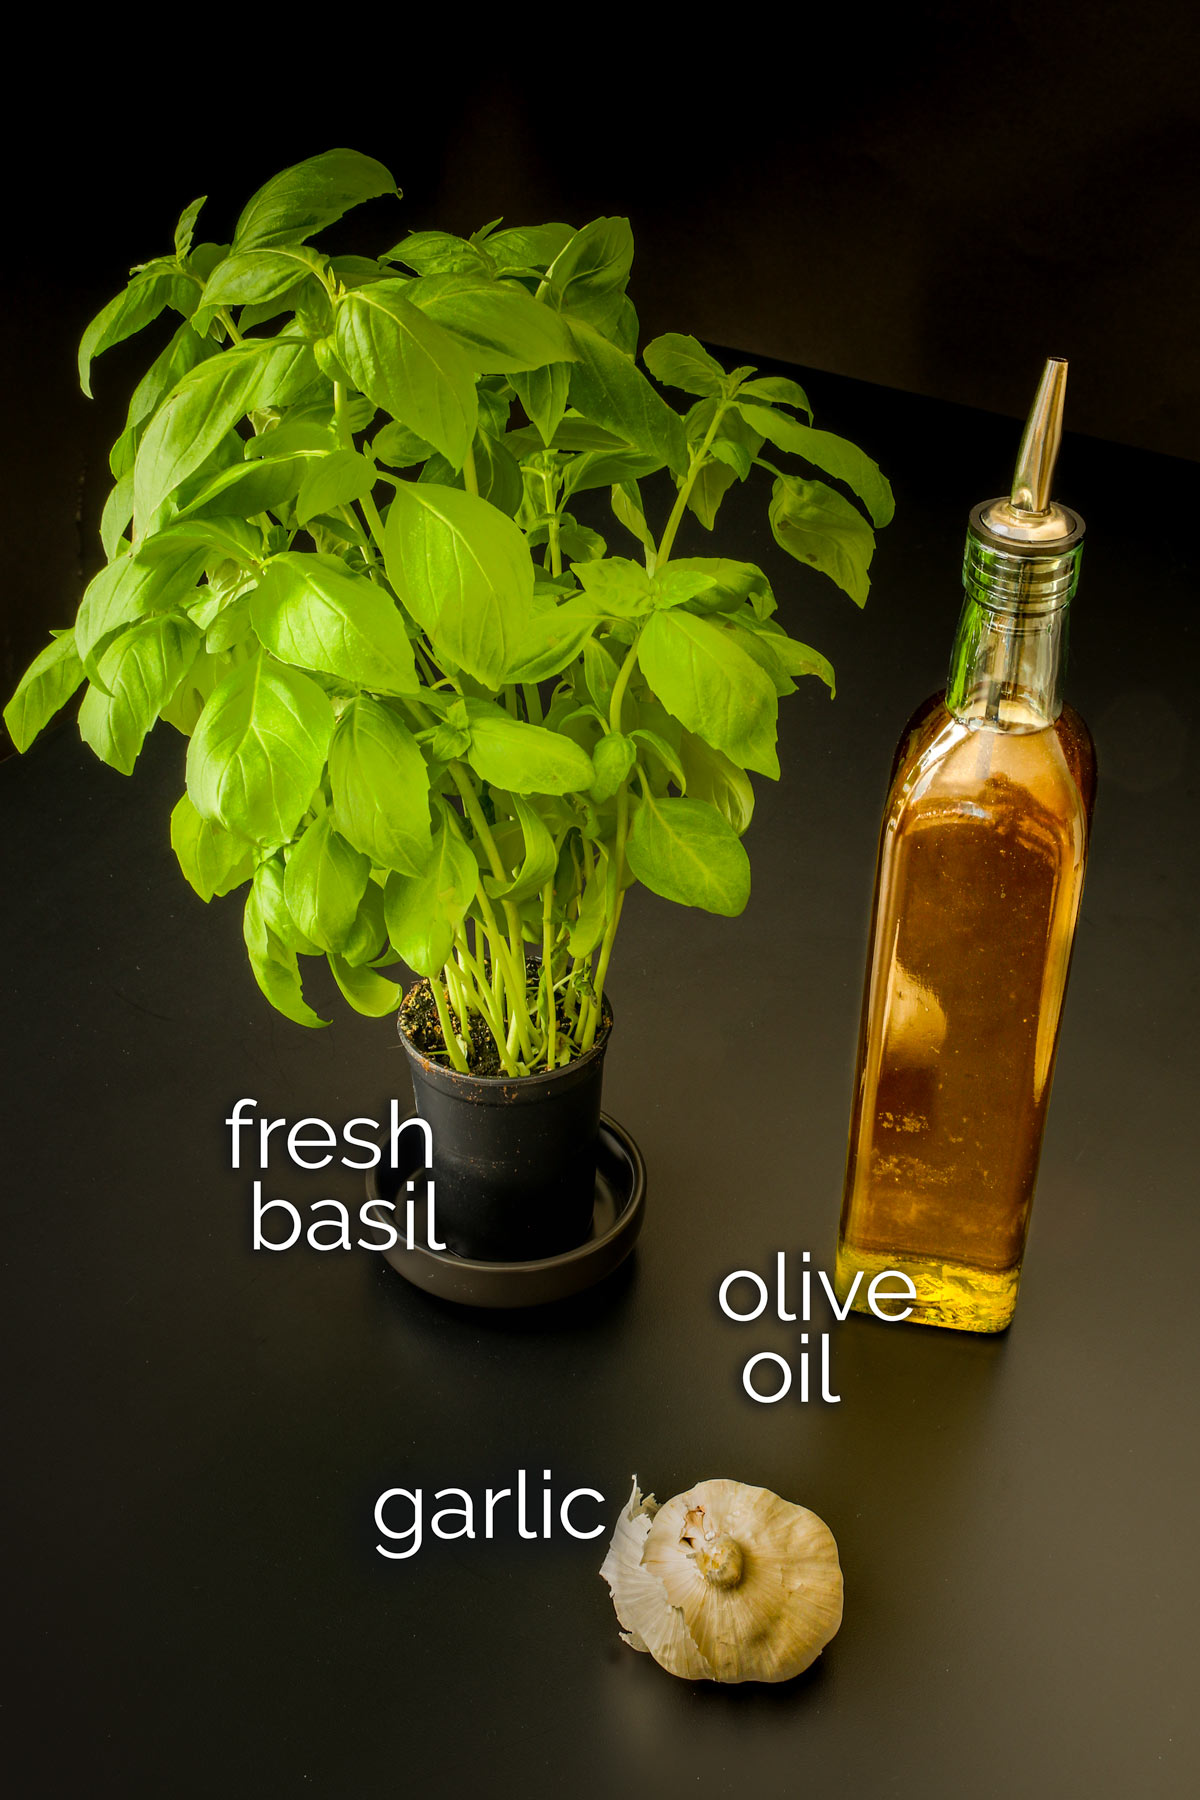 basil plant on table next to head of garlic and bottle of olive oil.